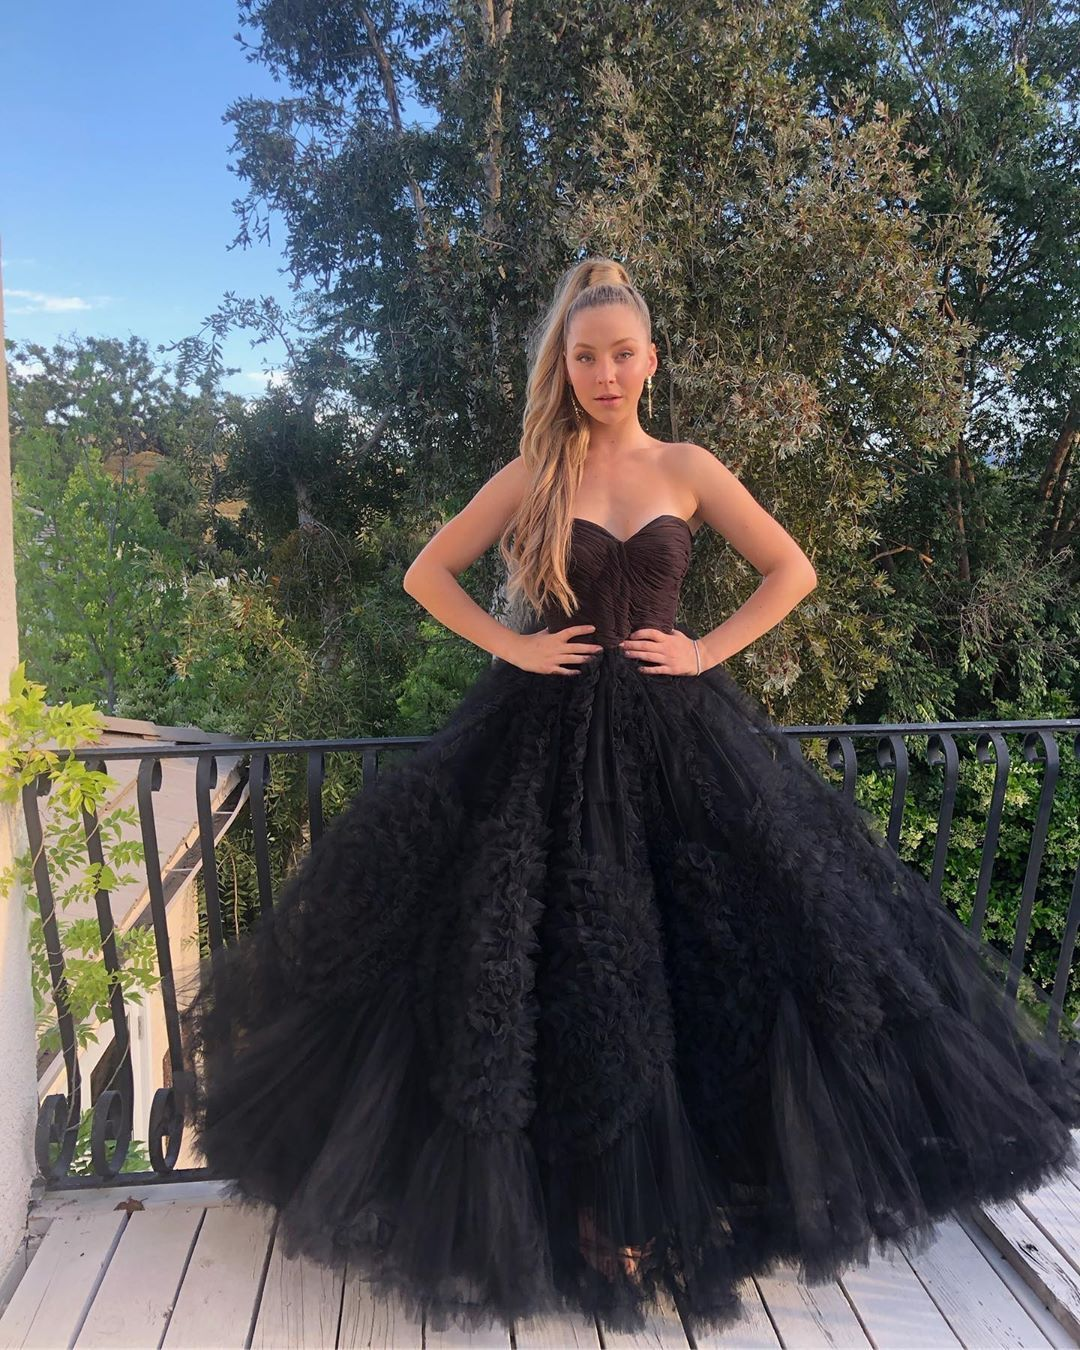 Luna Montana On Instagram Prom Prom Prom Prom Dresses Homecoming Dresses Tight Gowns [ 1350 x 1080 Pixel ]